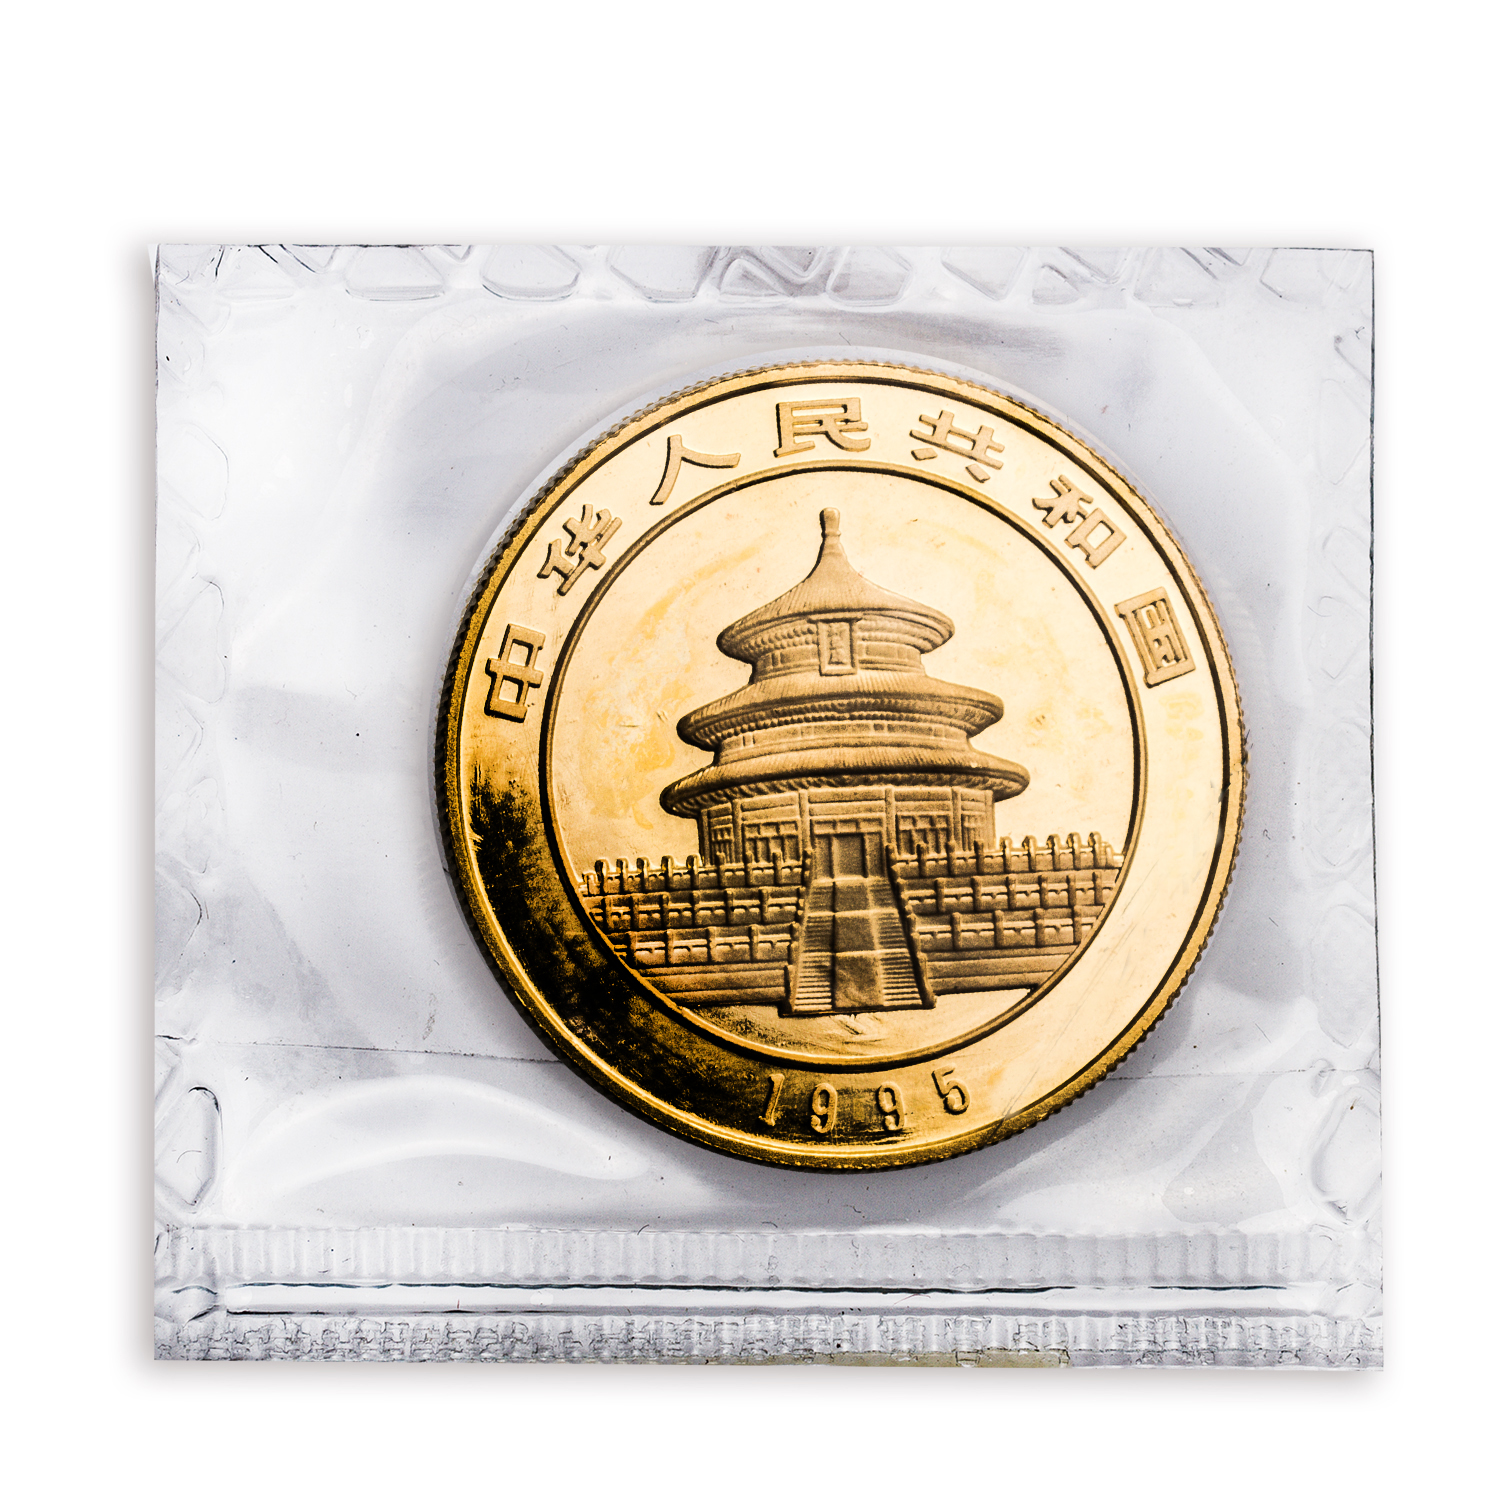 1995 1 oz Gold Chinese Panda - Large Date (Sealed)